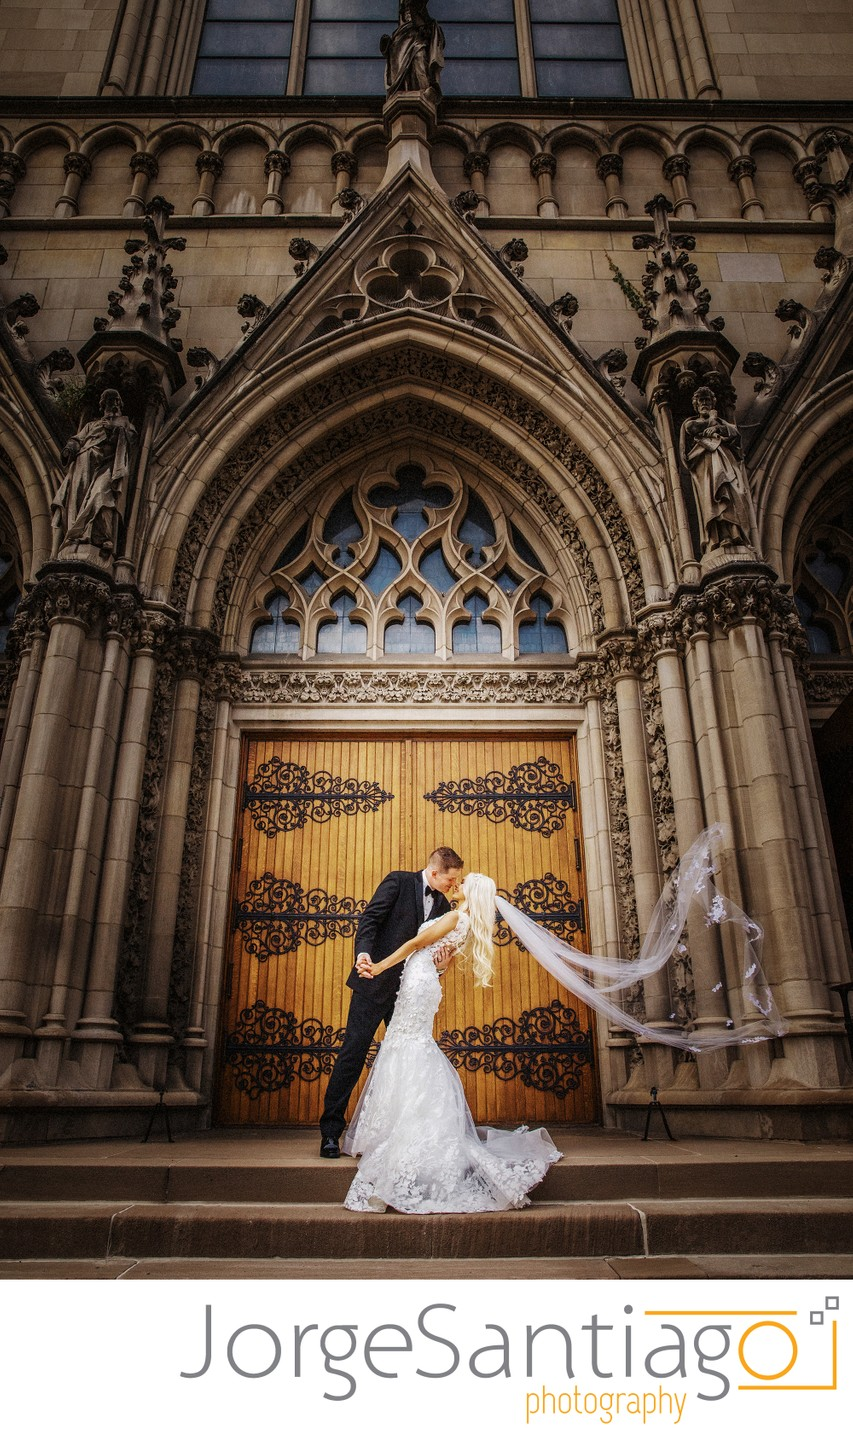 Best rated wedding photographers in Pittsburgh, PA